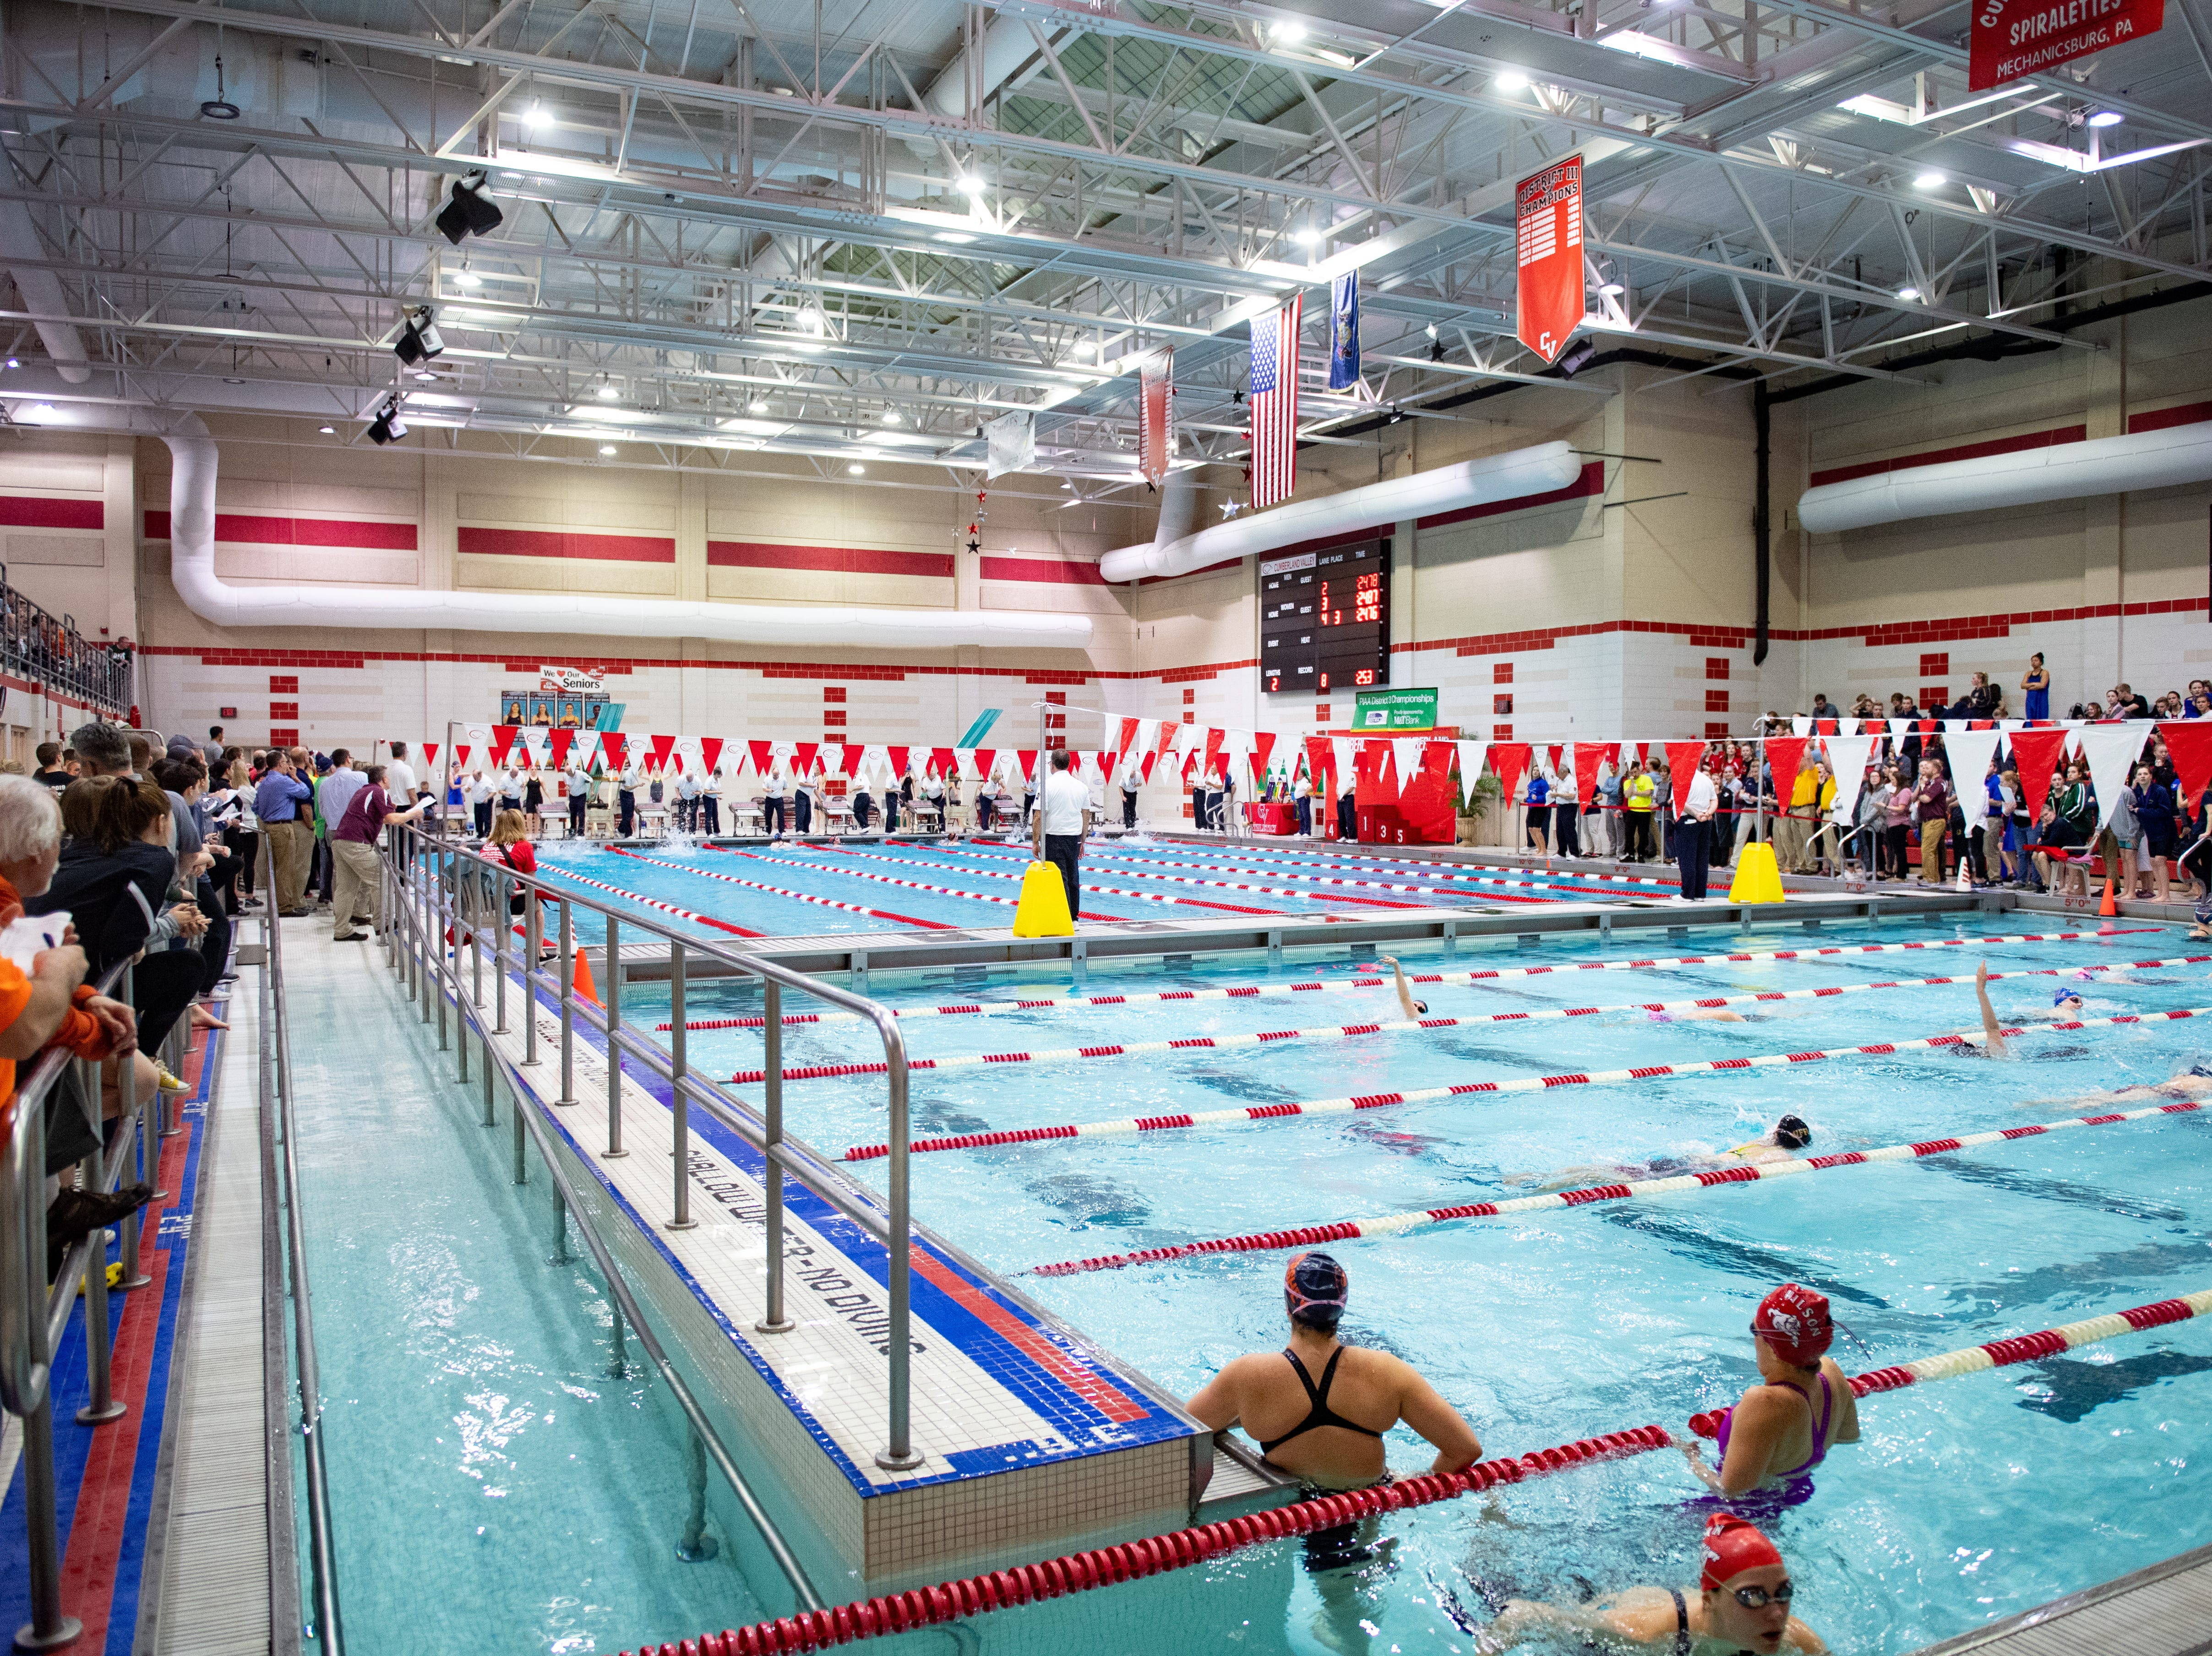 The PIAA District 3 Championships are being held at Cumberland Valley High School, March 1, 2019.